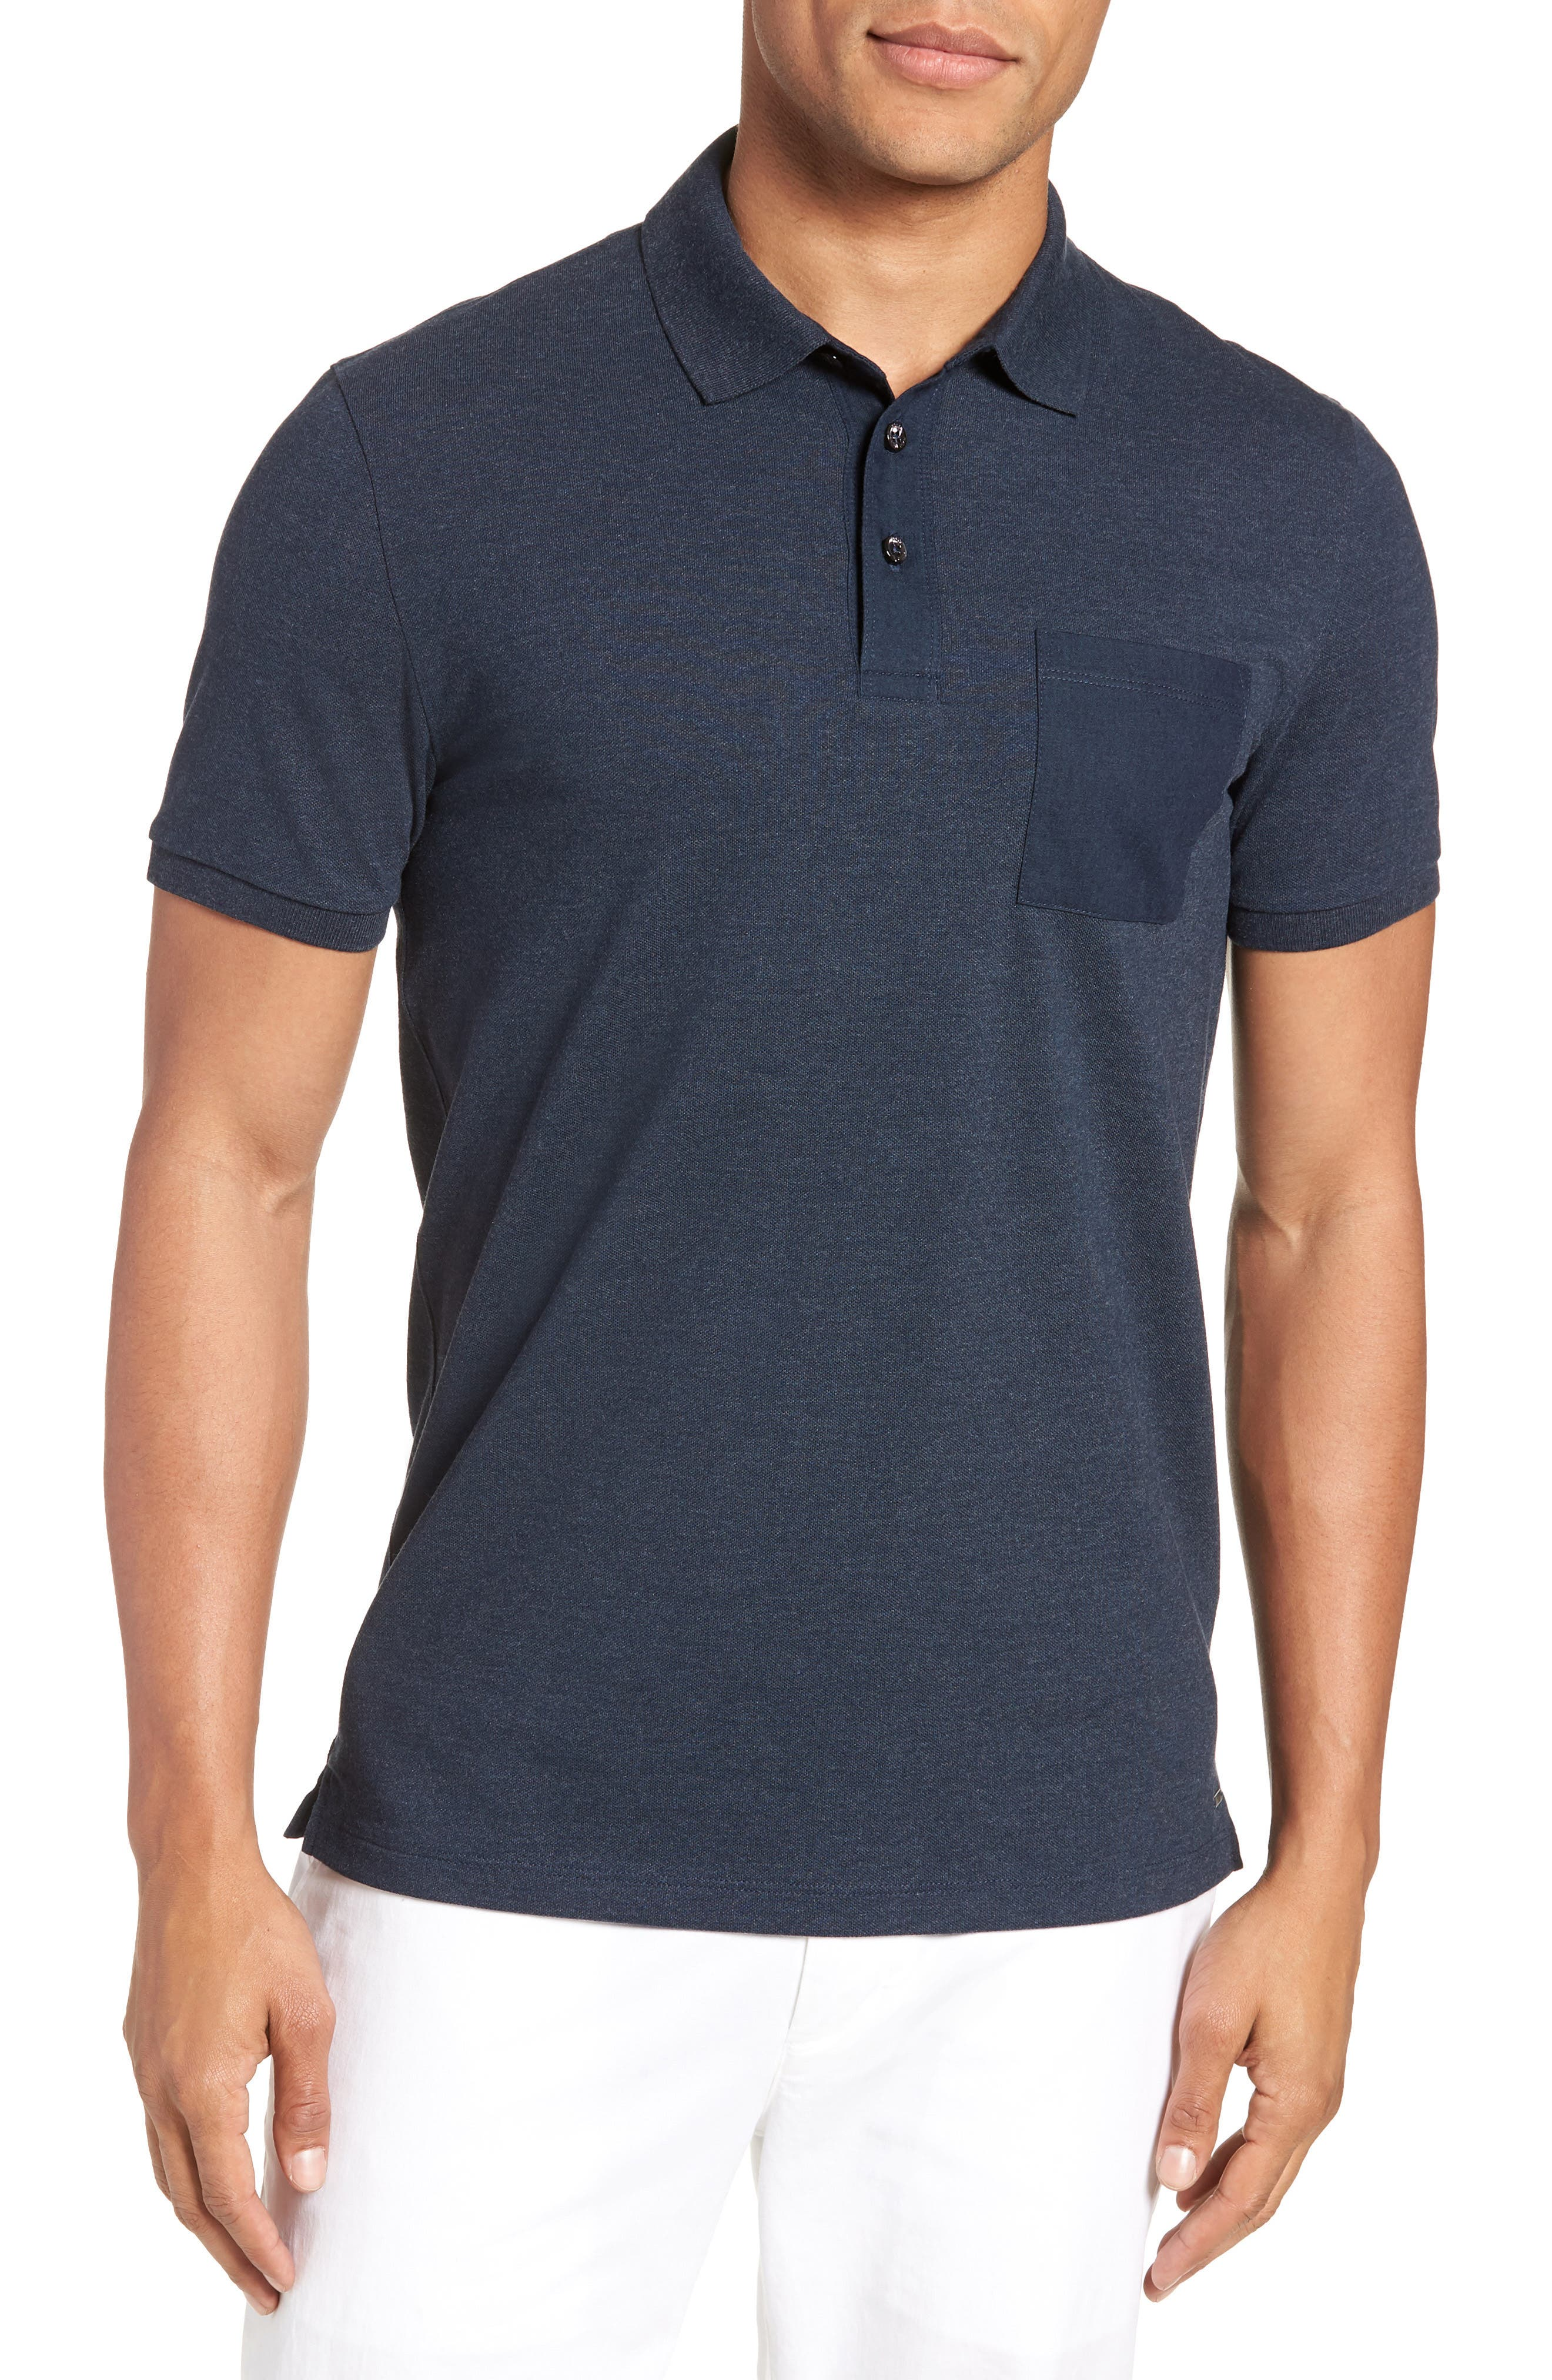 Penrose Polo Shirt,                         Main,                         color, 410